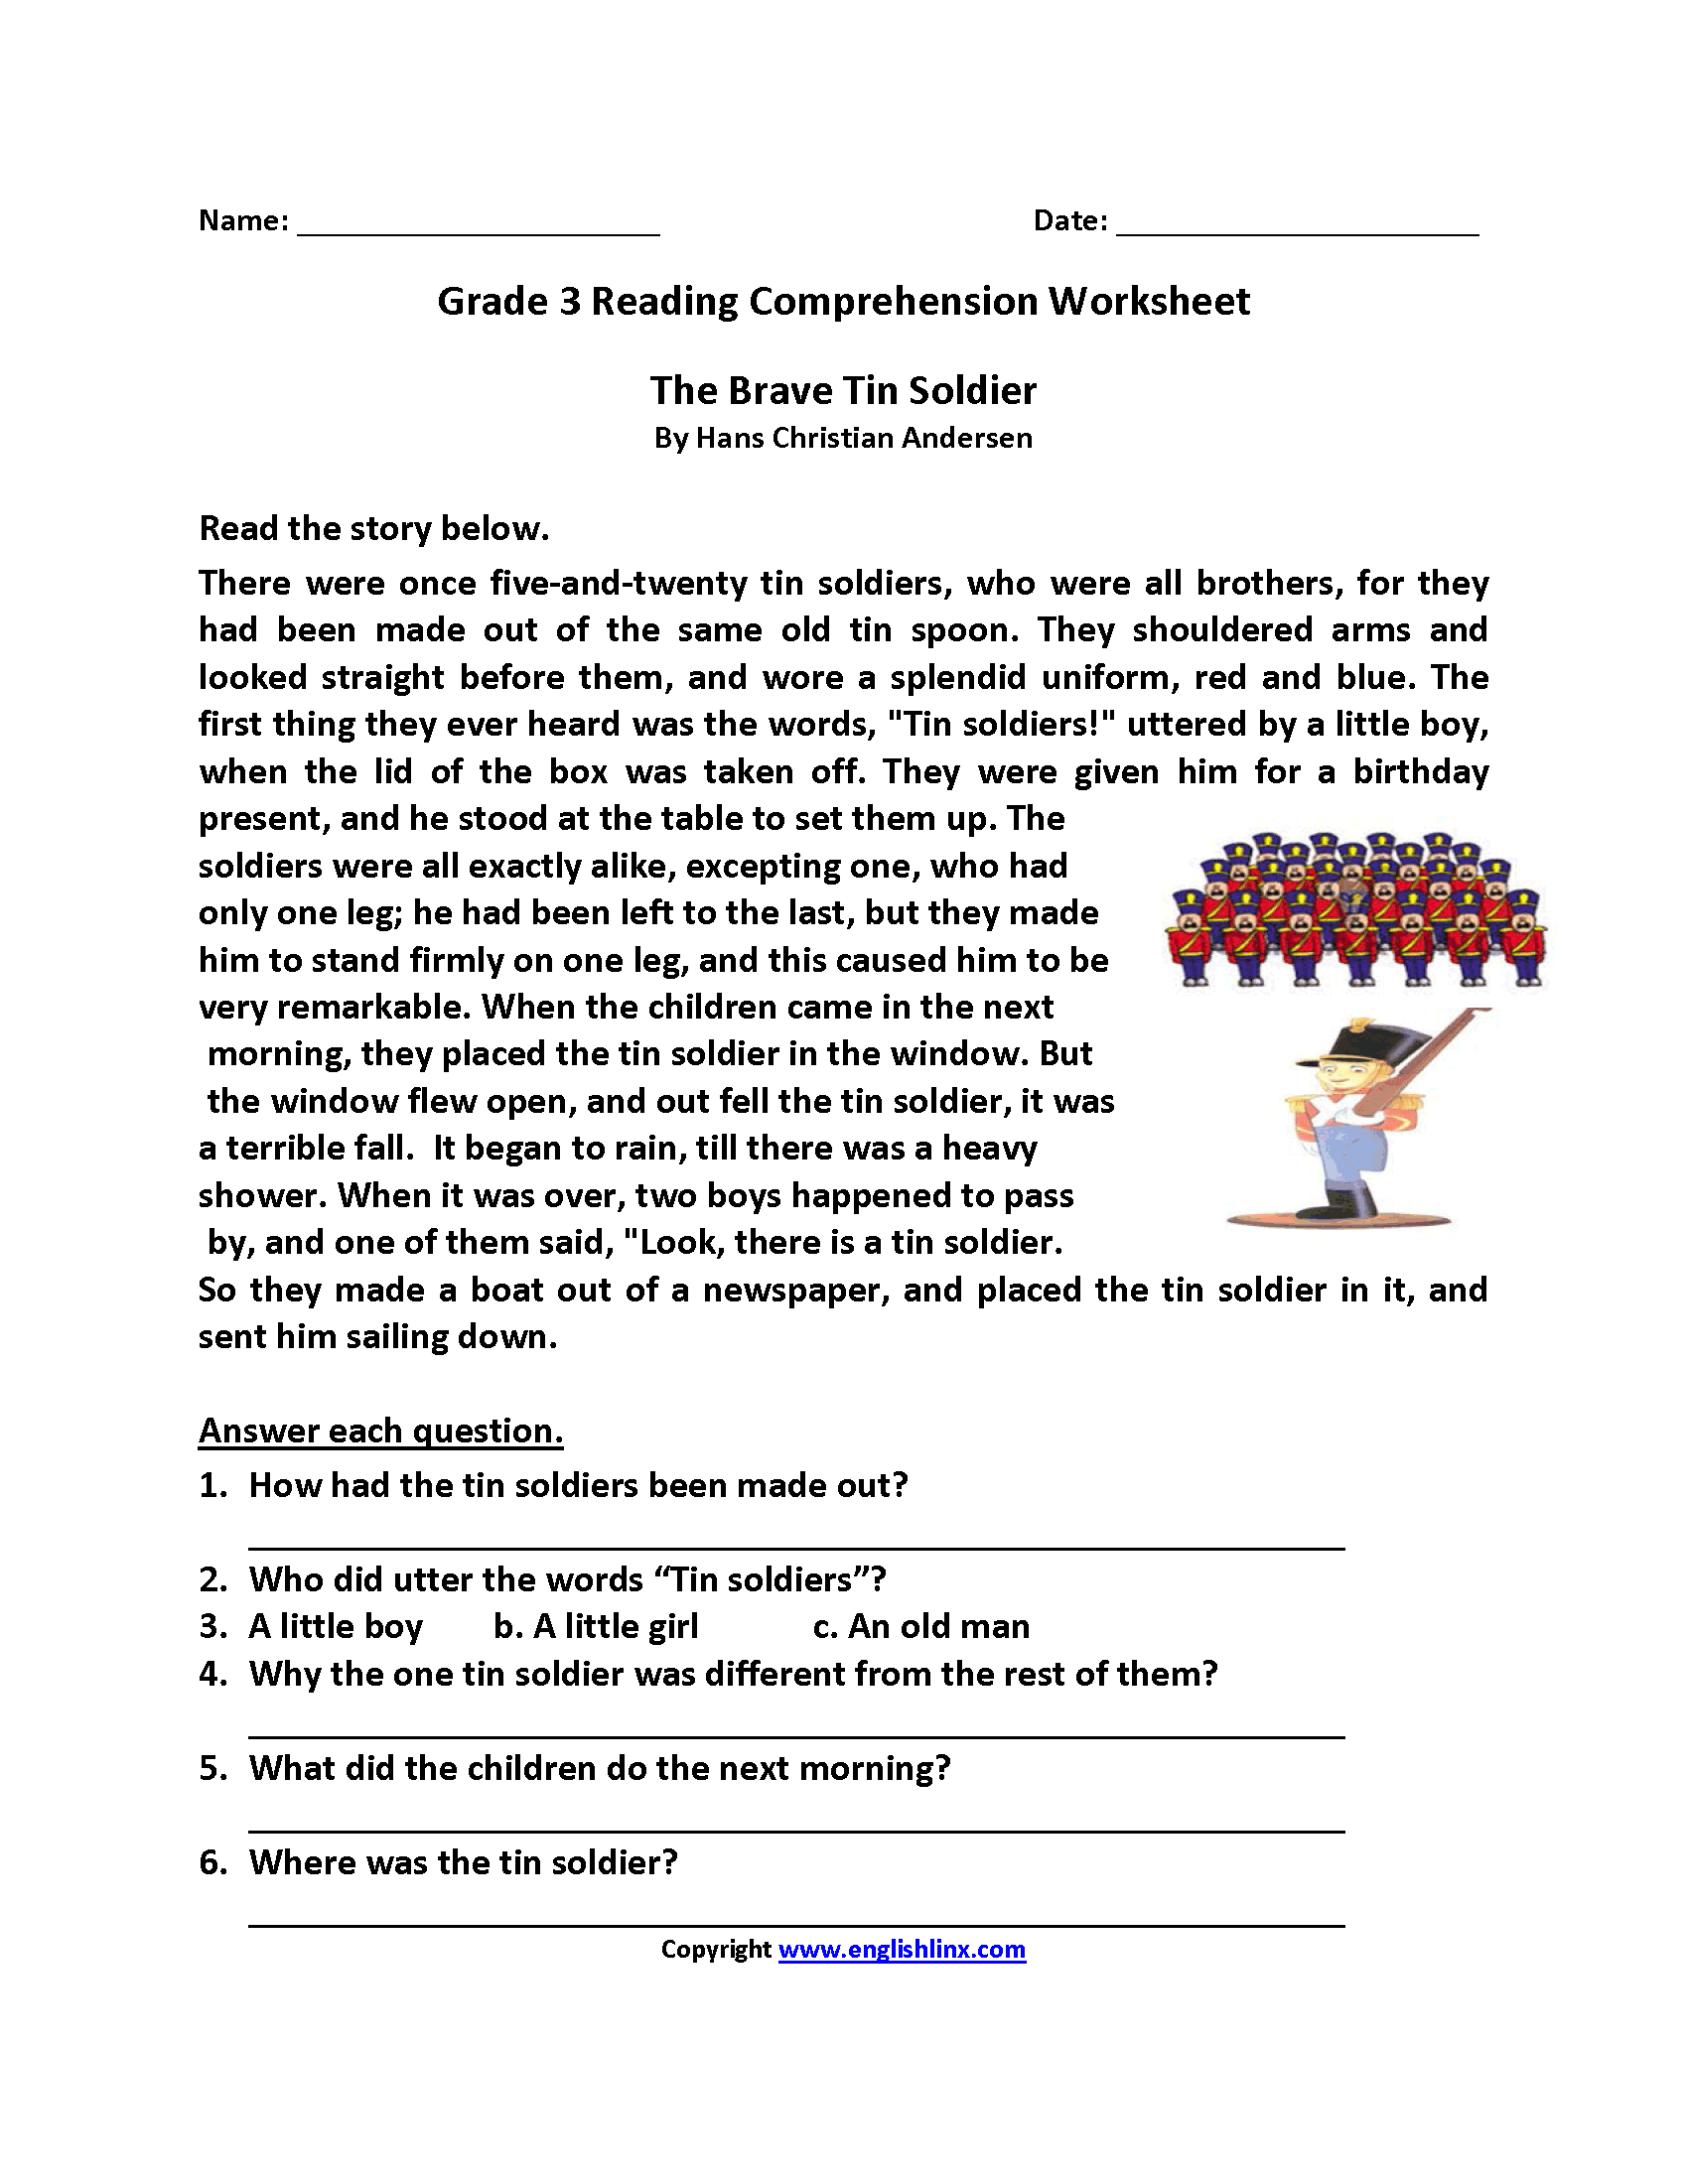 Free Printable Reading Comprehension Worksheets 3Rd Grade For Free | Free Printable Reading Worksheets